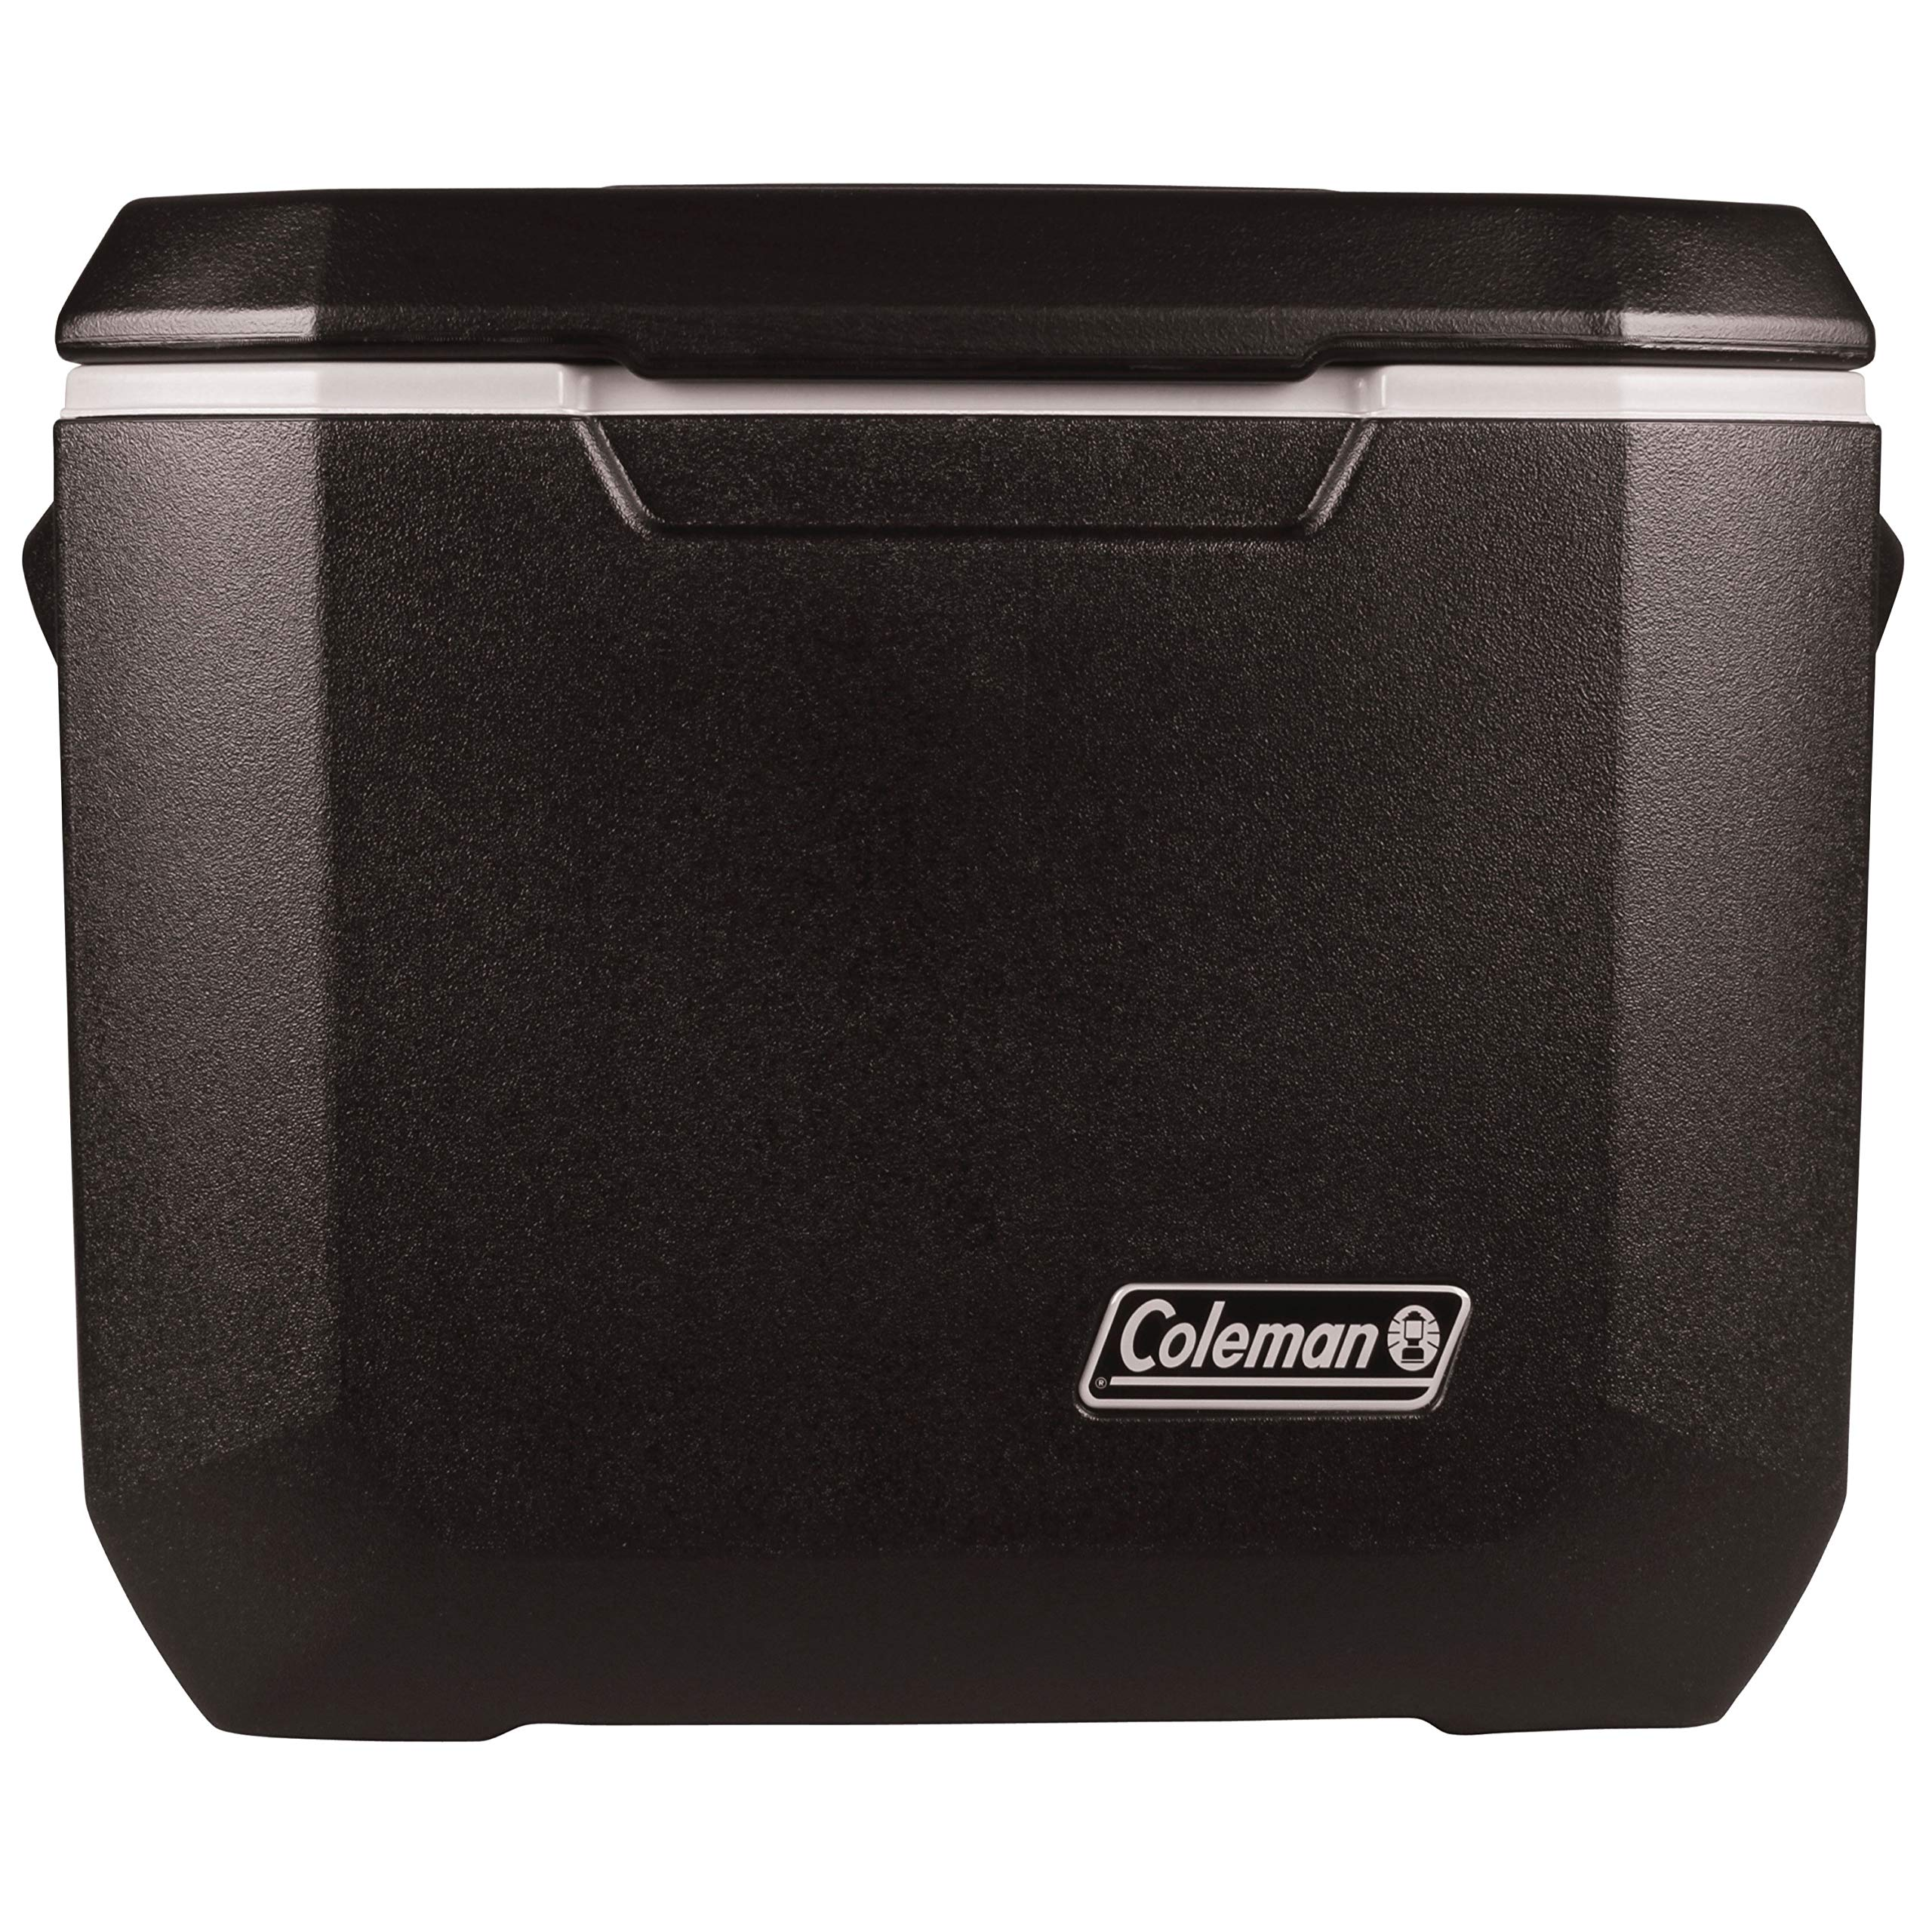 Coleman Wheeled Cooler | Xtreme Cooler Keeps Ice Up to 5 Days | Heavy-Duty 50-Quart Cooler with Wheels for Camping, BBQs, Tailgating & Outdoor Activities by Coleman